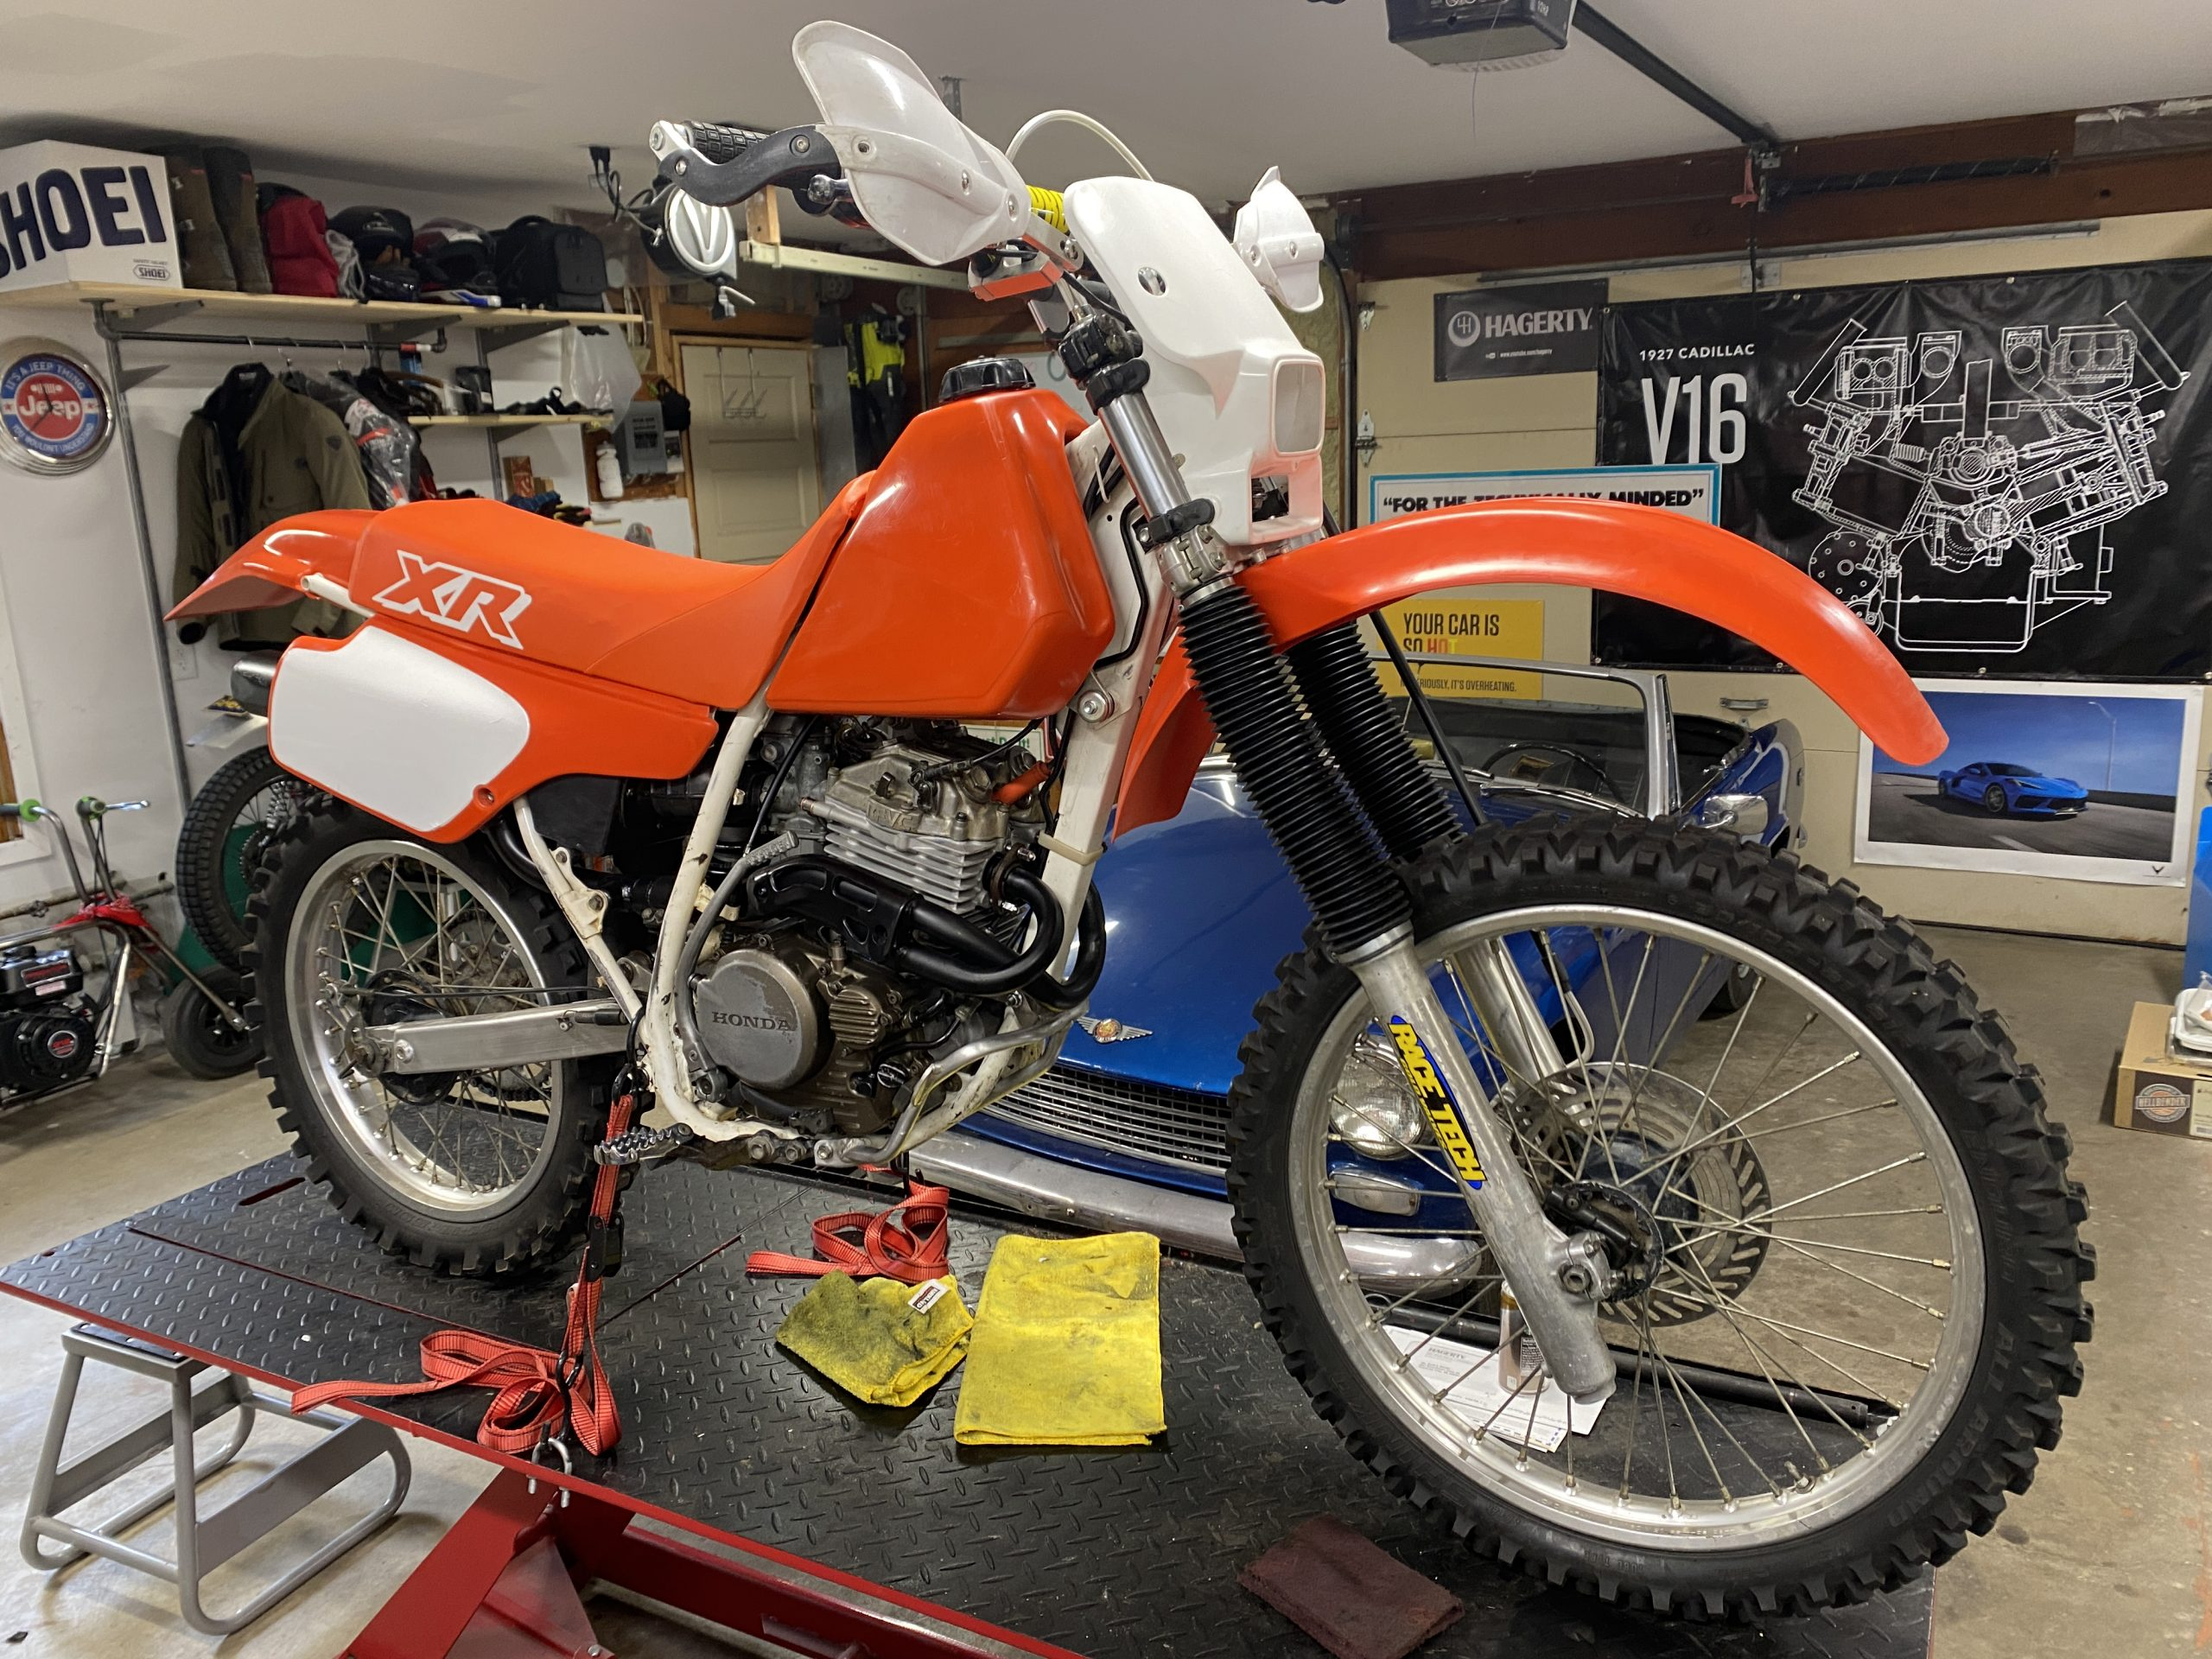 XR250 ready for test fire